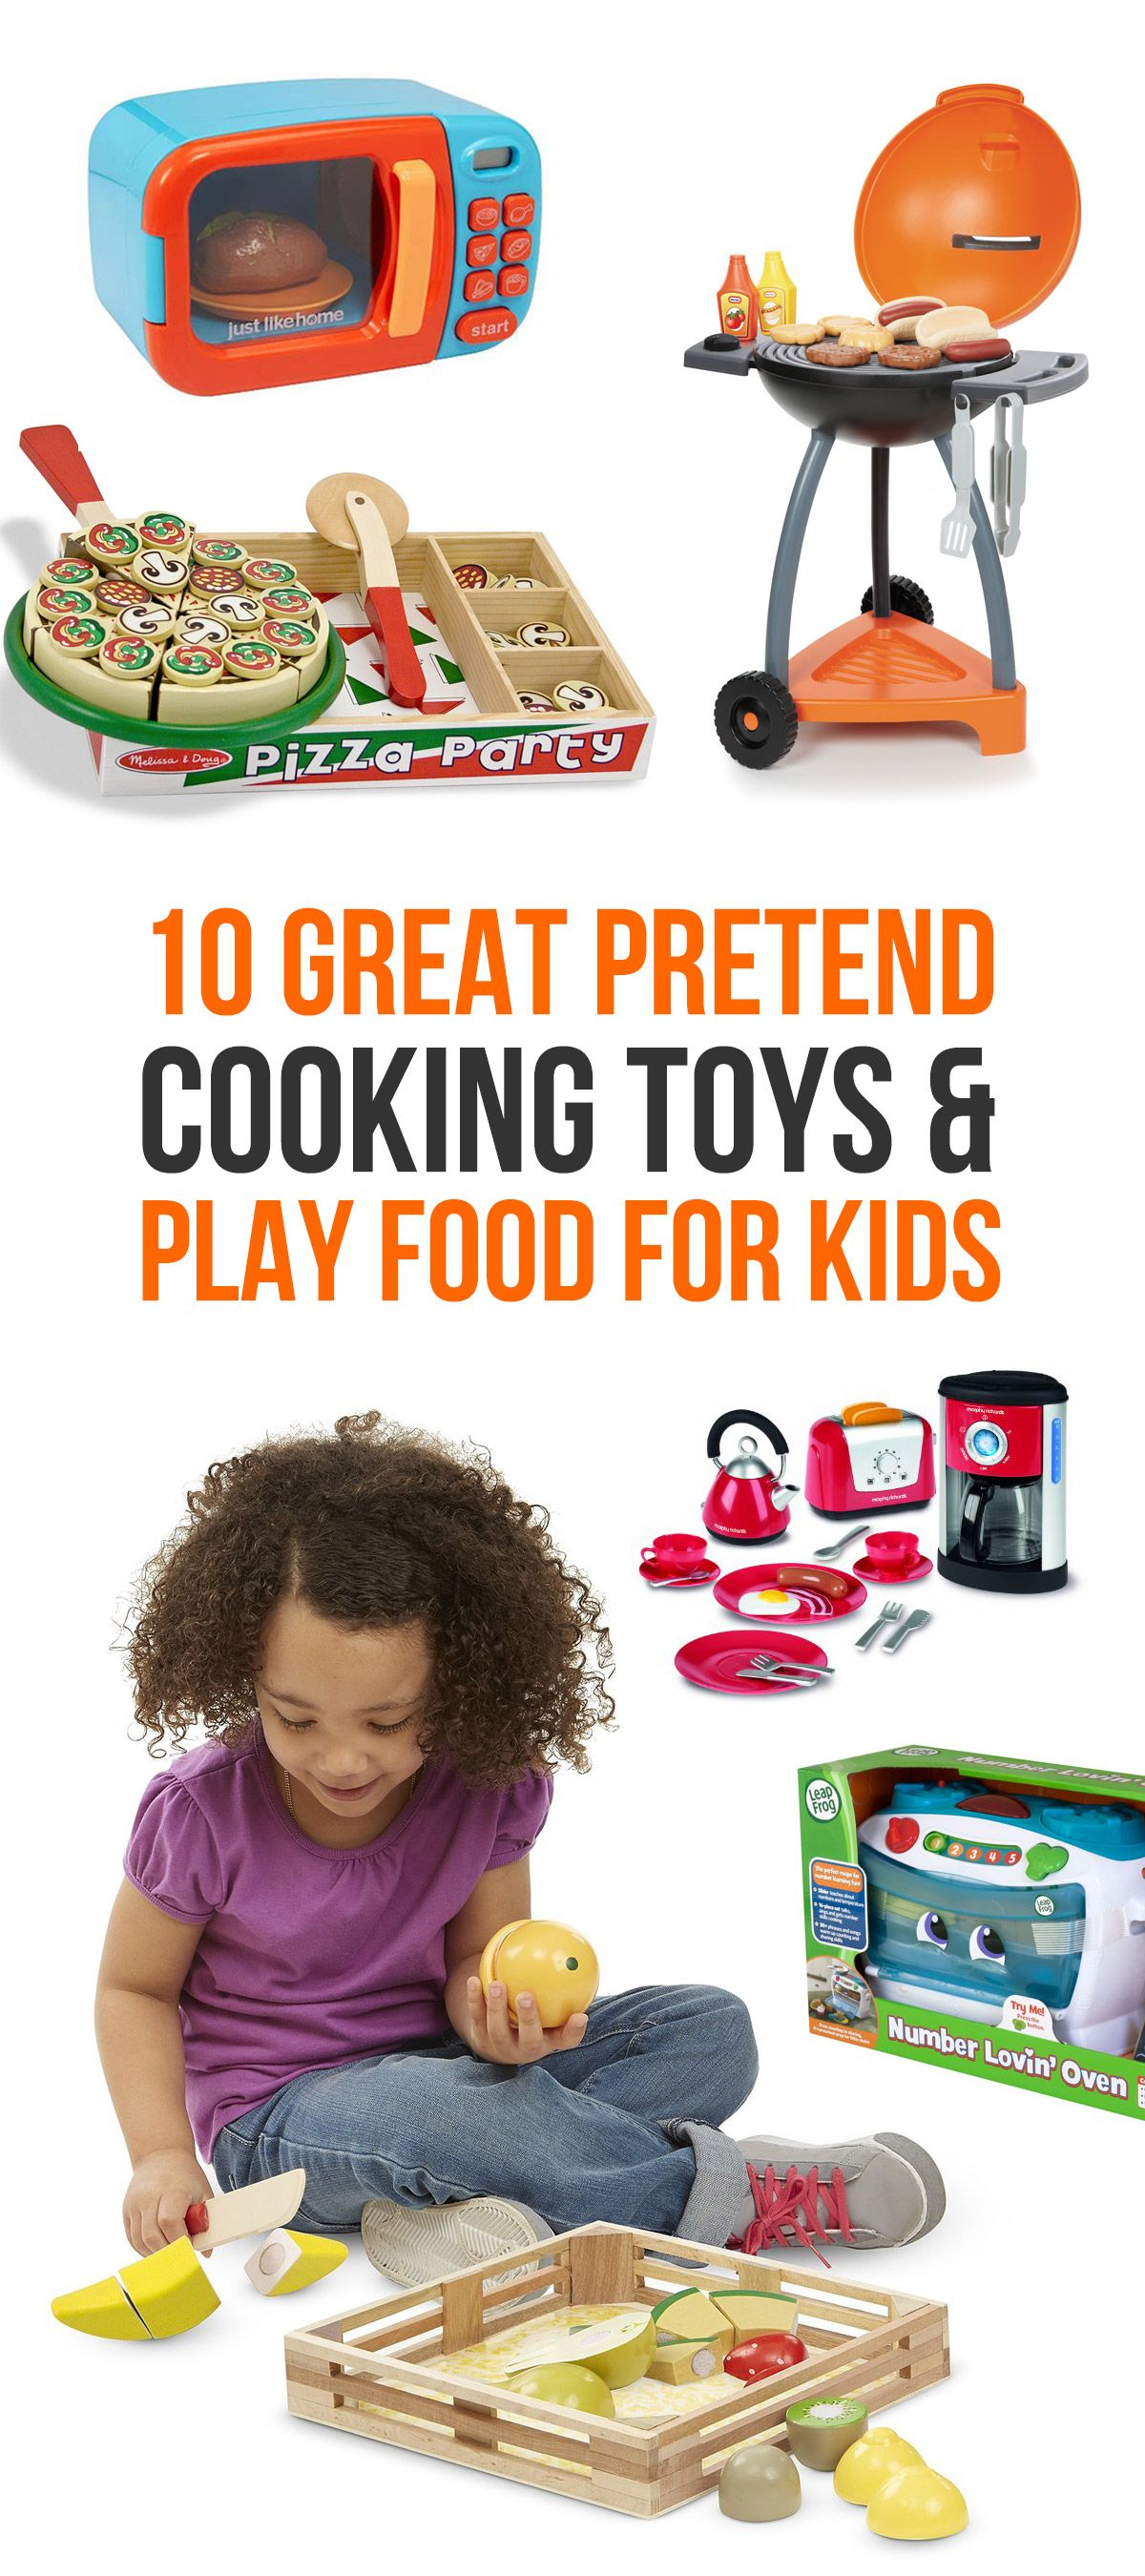 10 Great Pretend Cooking Toys & Play Food For Kids